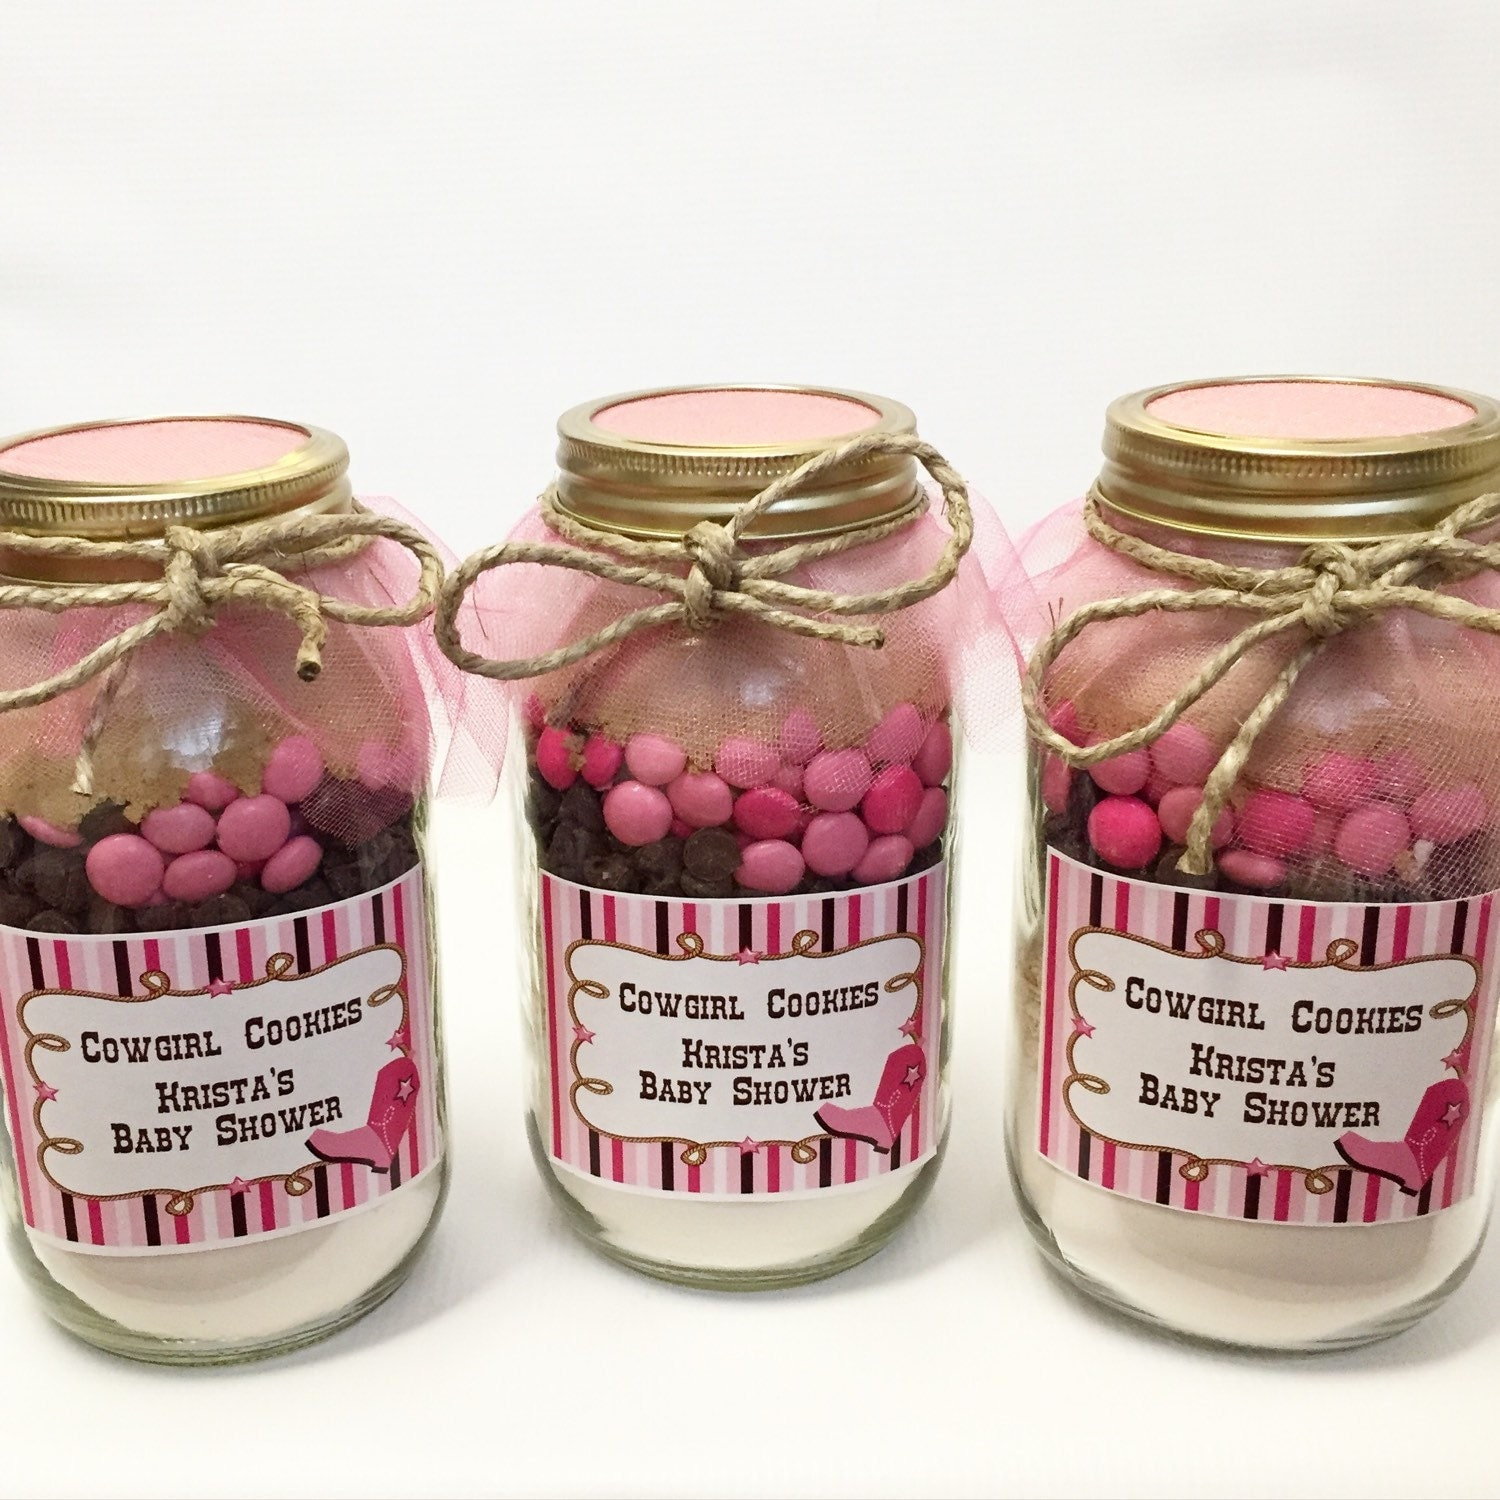 Pink Cowgirl Mason Jar Layered Gourmet Cookie Mix